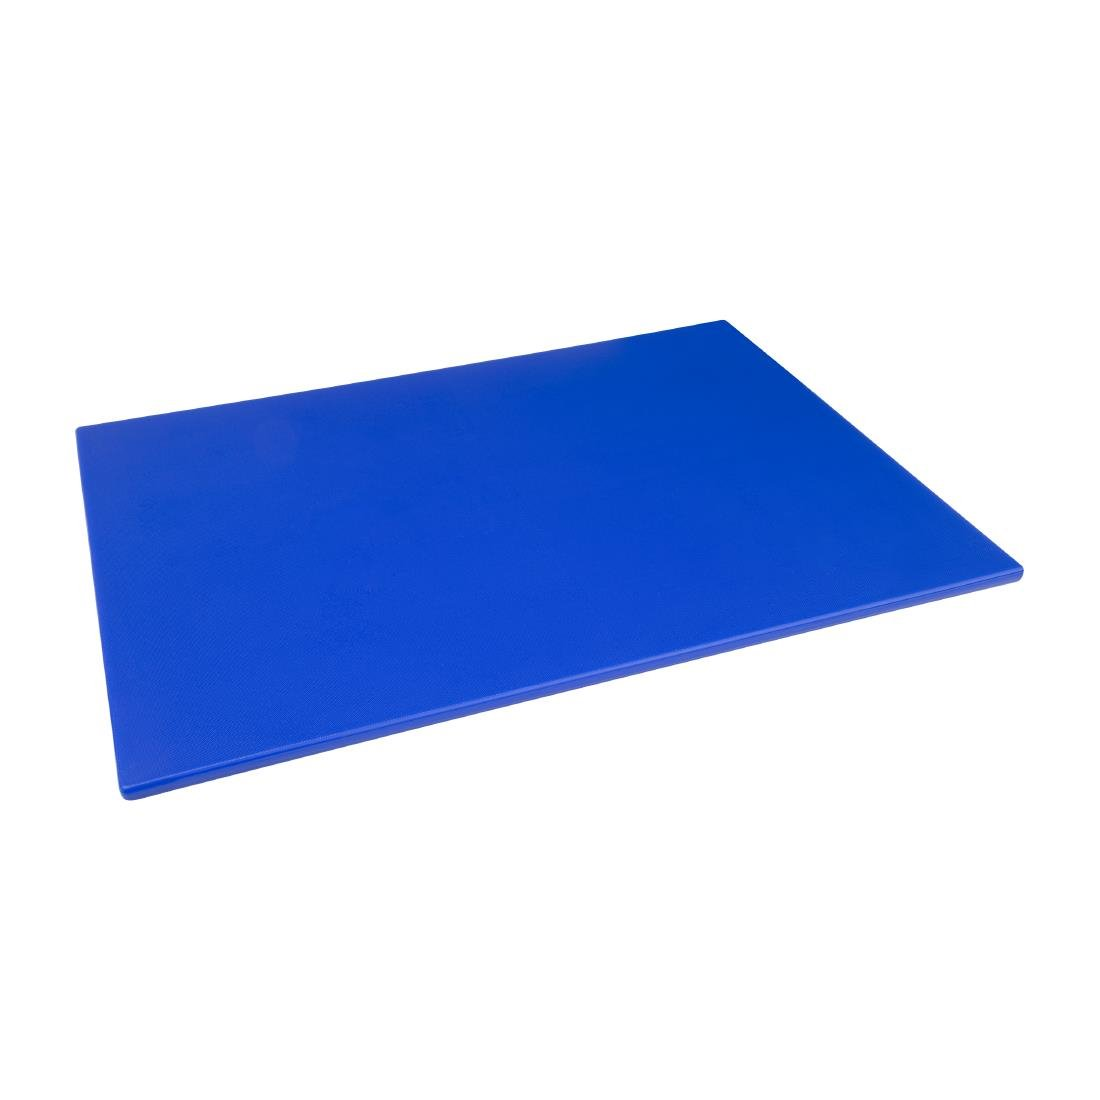 Hygiplas Low Density Chopping Board Blue - 600x450x10mm